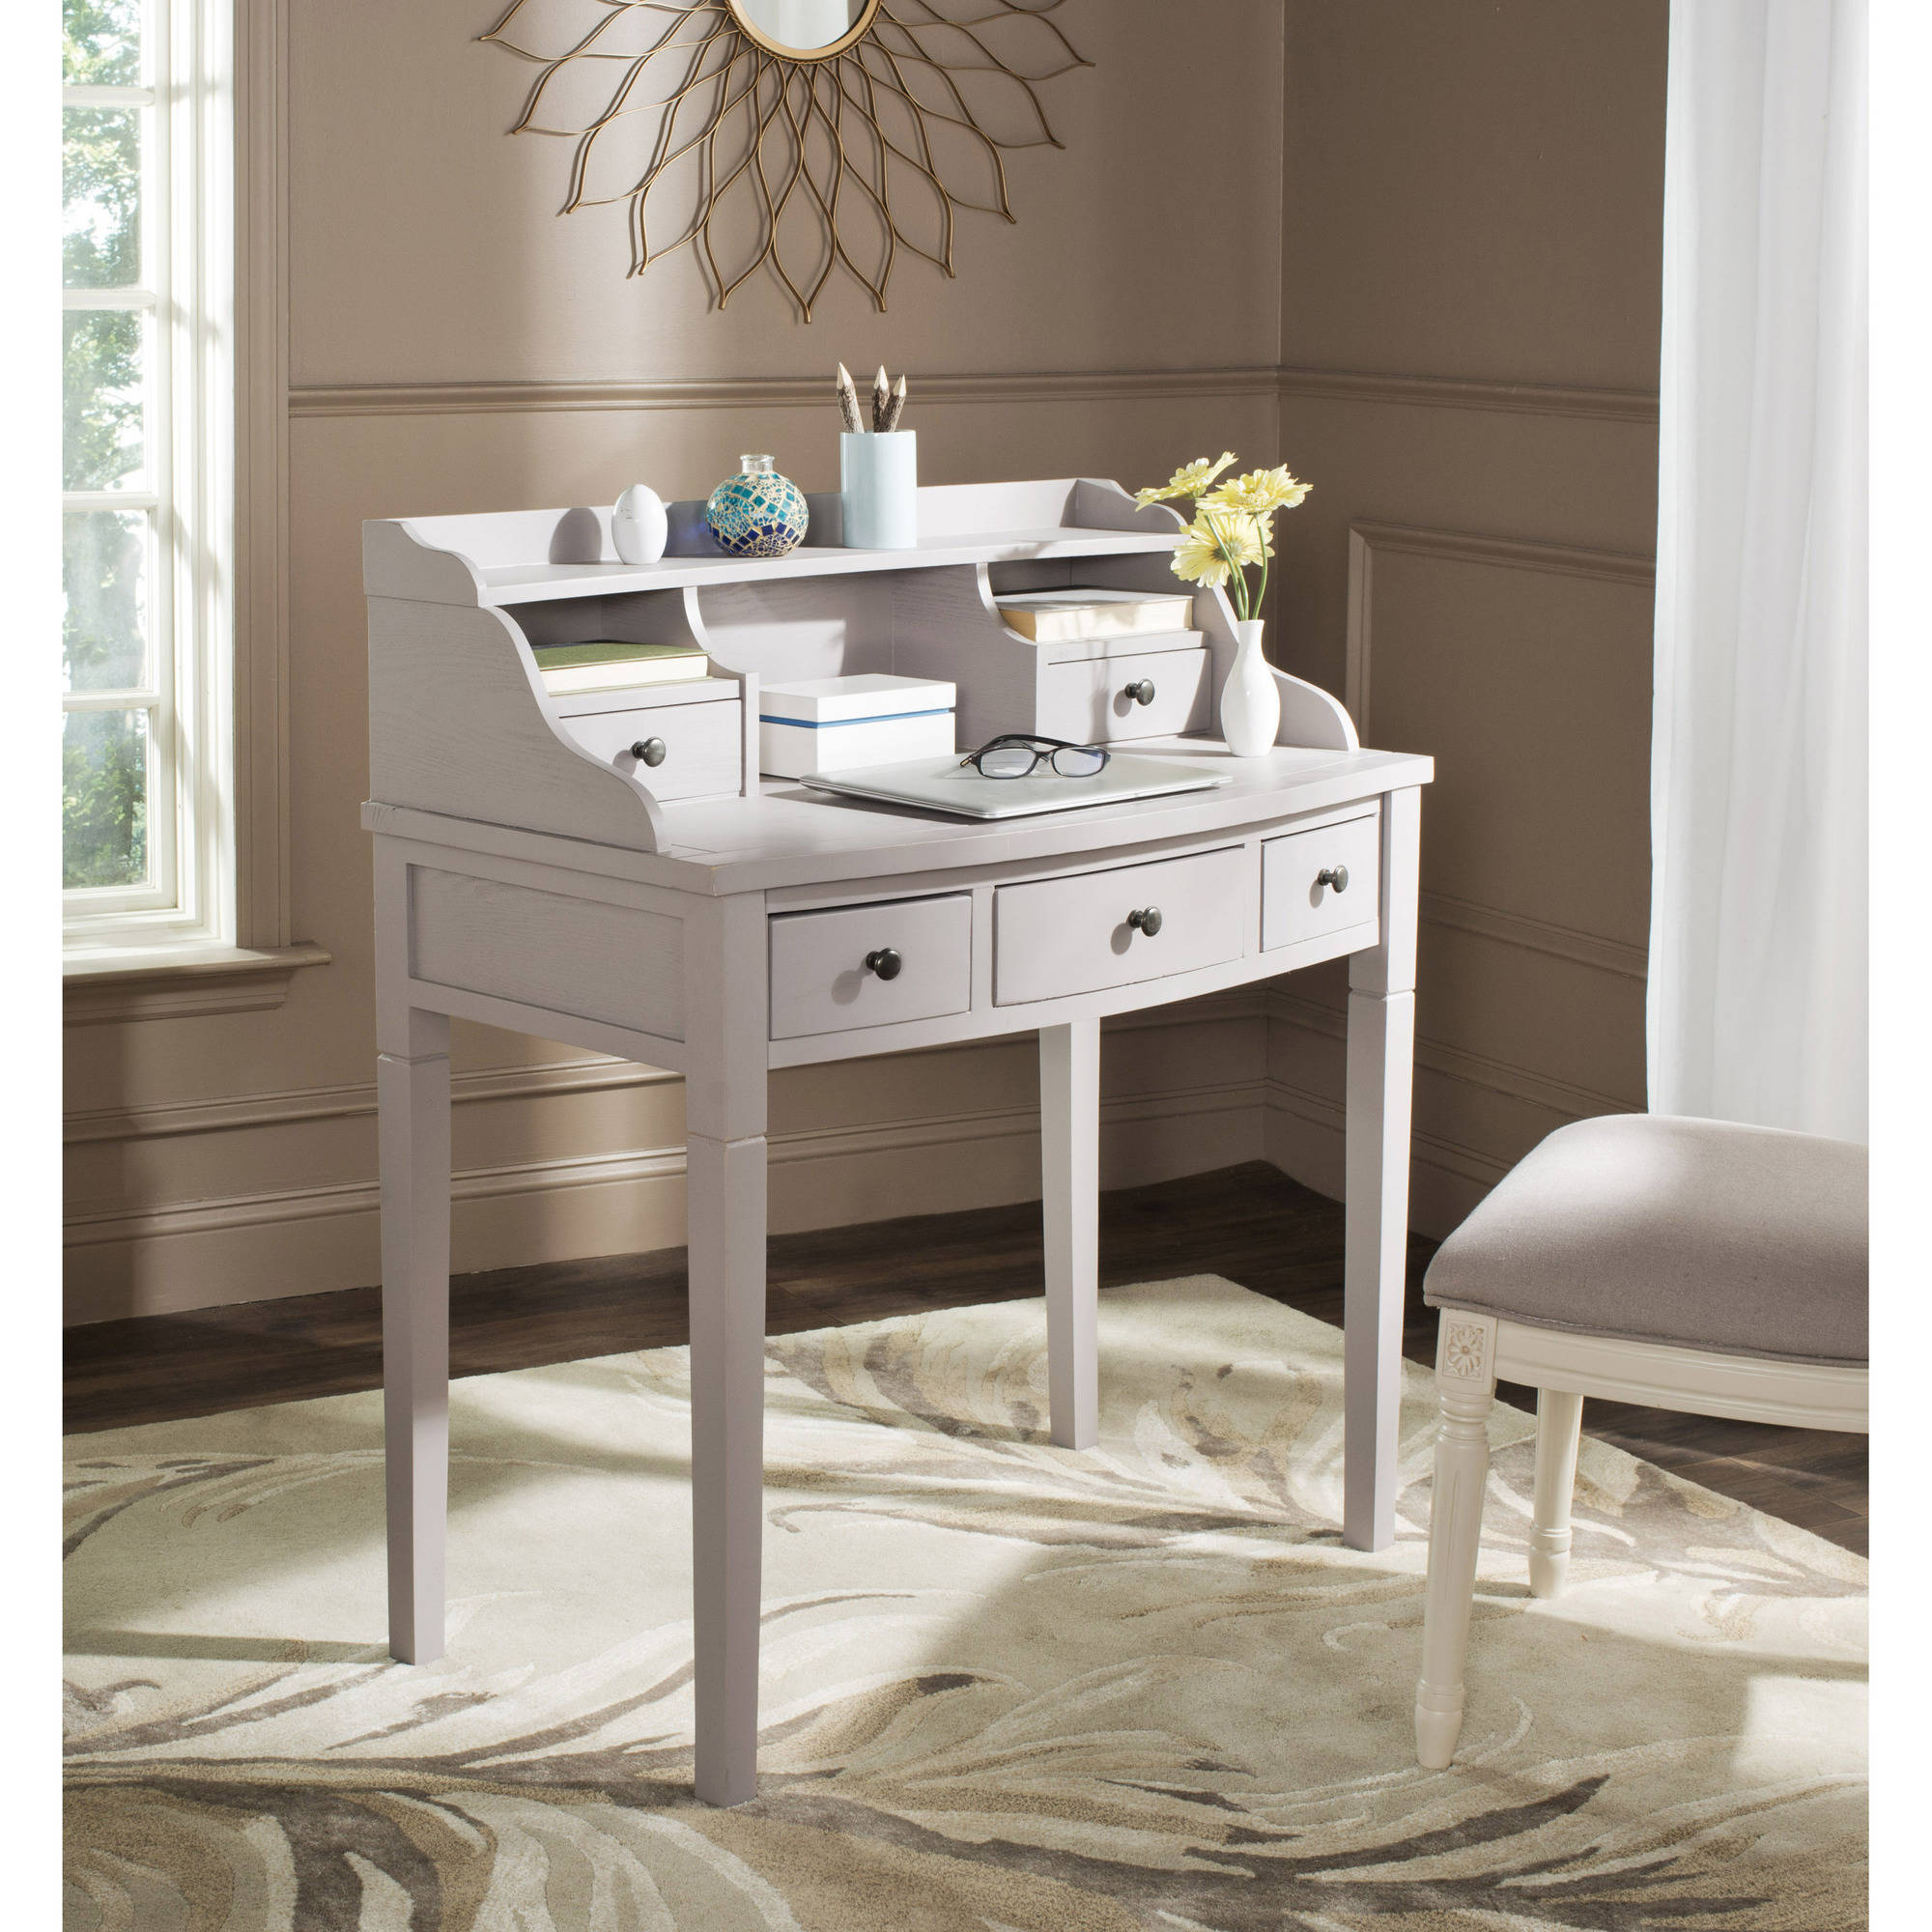 Safavieh American Home Landon Writing Desk, Multiple Colors